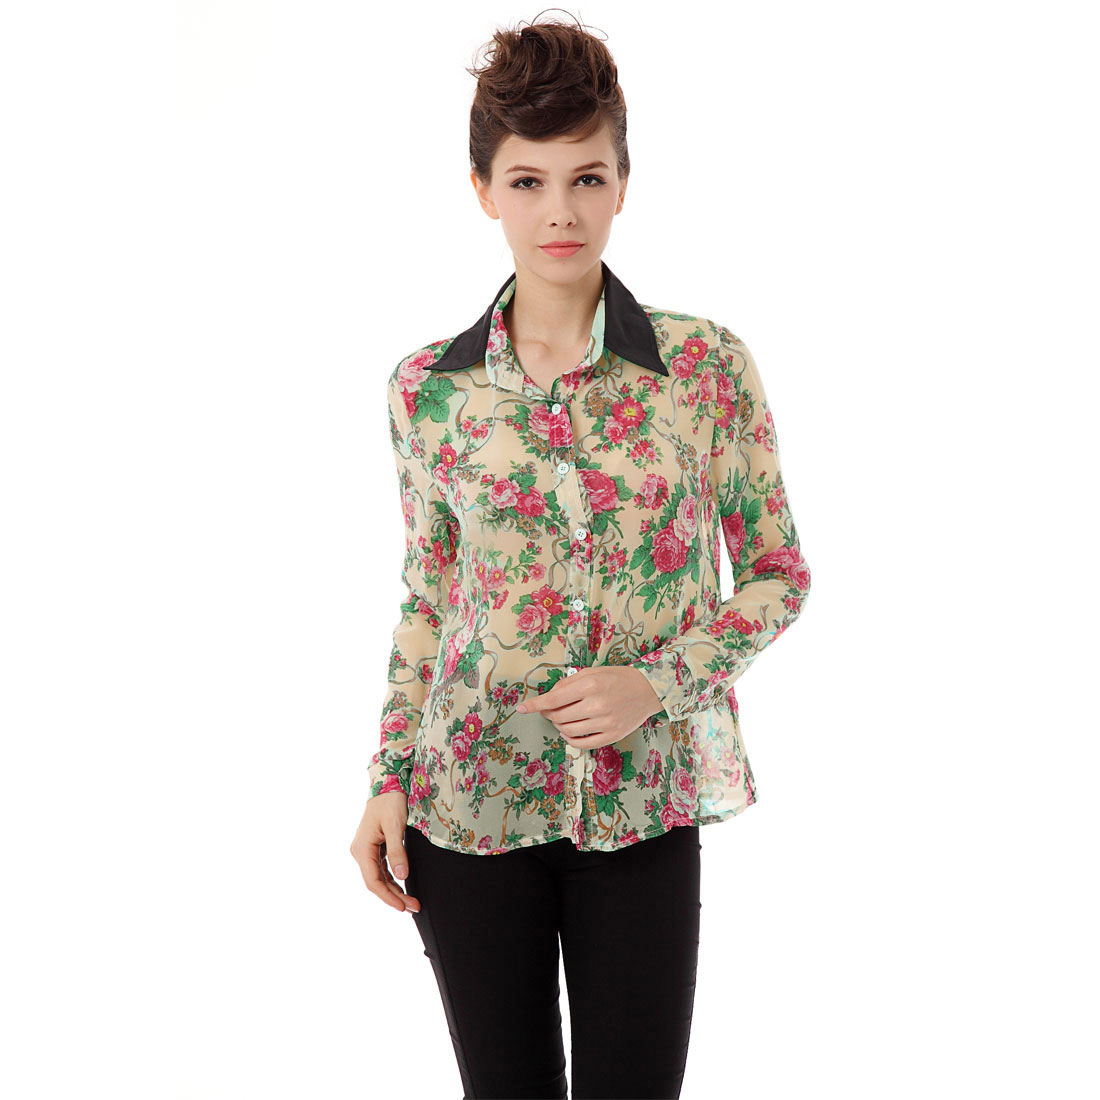 Ladies Chic Point Collar Long Sleeve Floral Pattern Beige Blouse XL